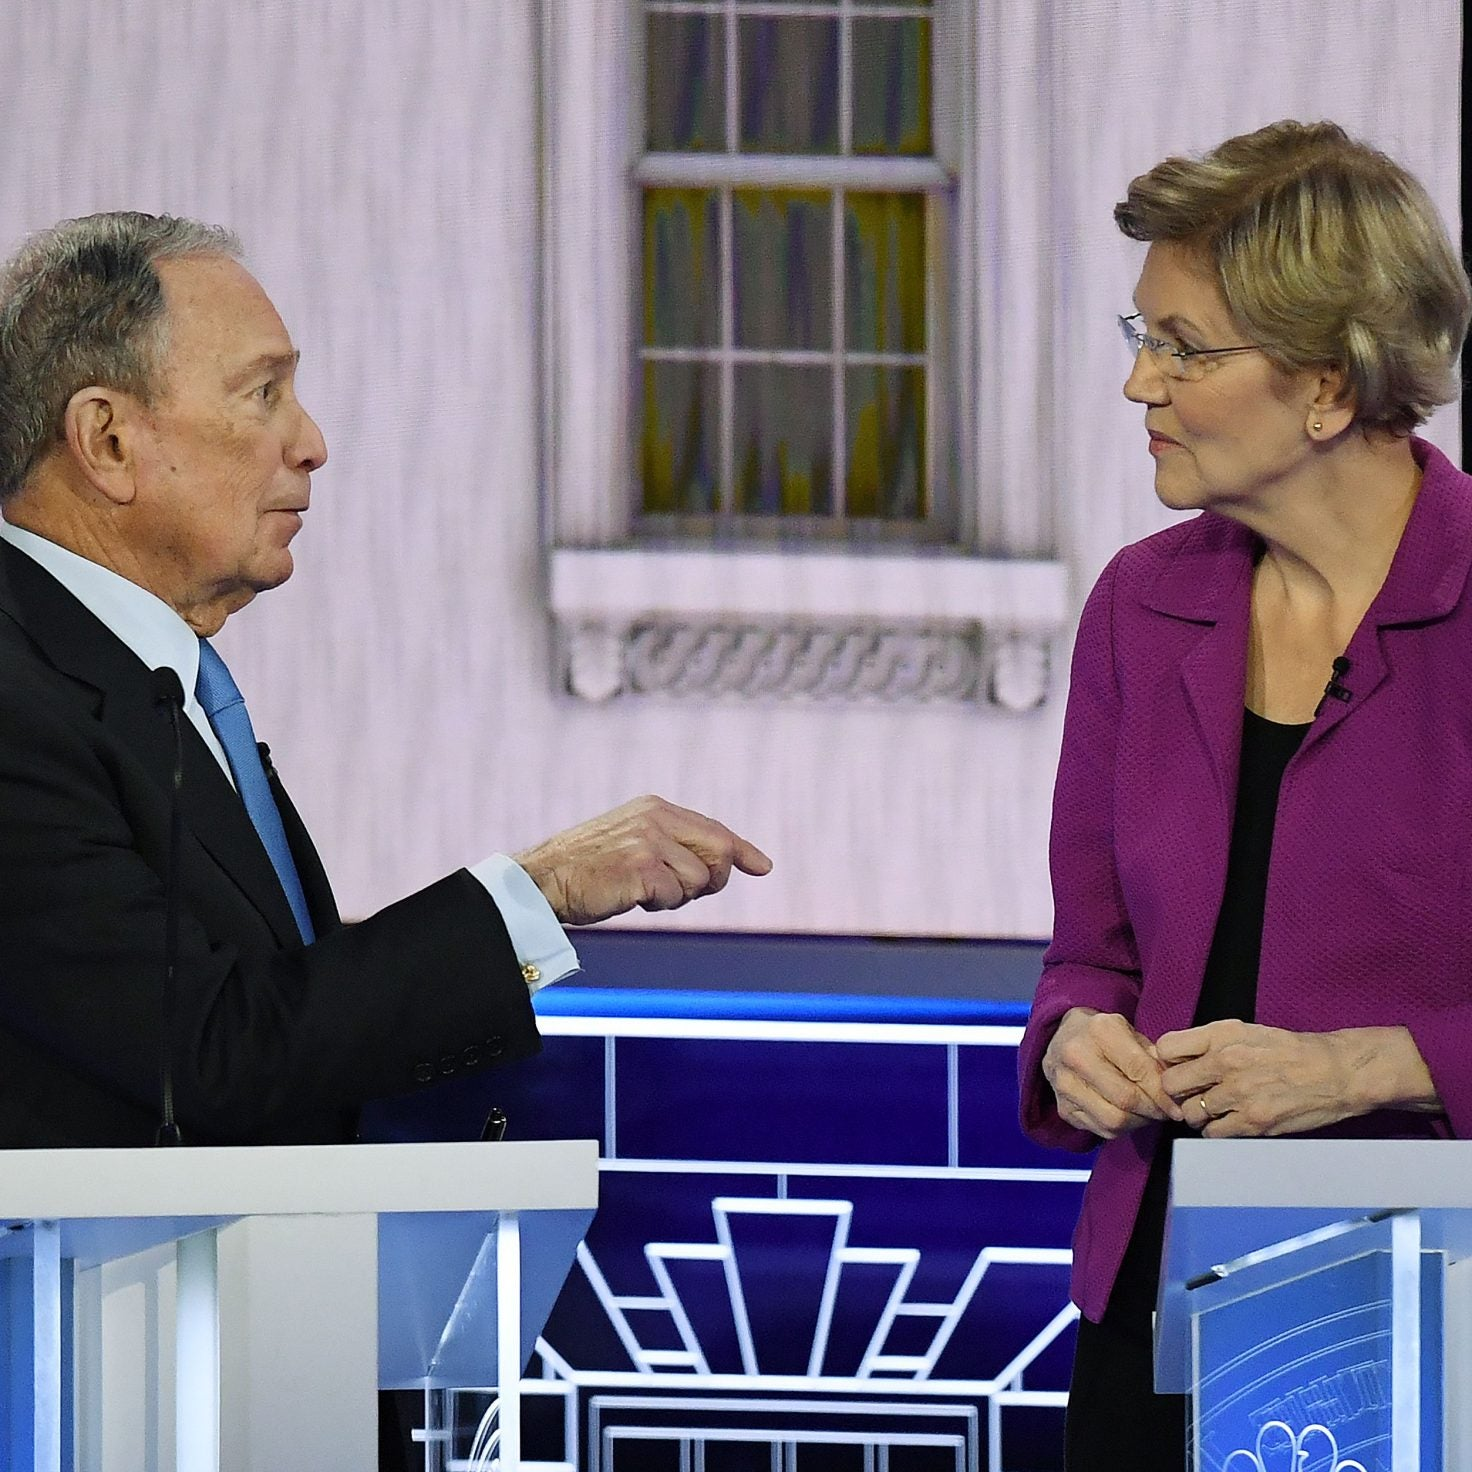 Black Twitter Has Spoken: Warren Ethered Bloomberg During Last Night's Debate